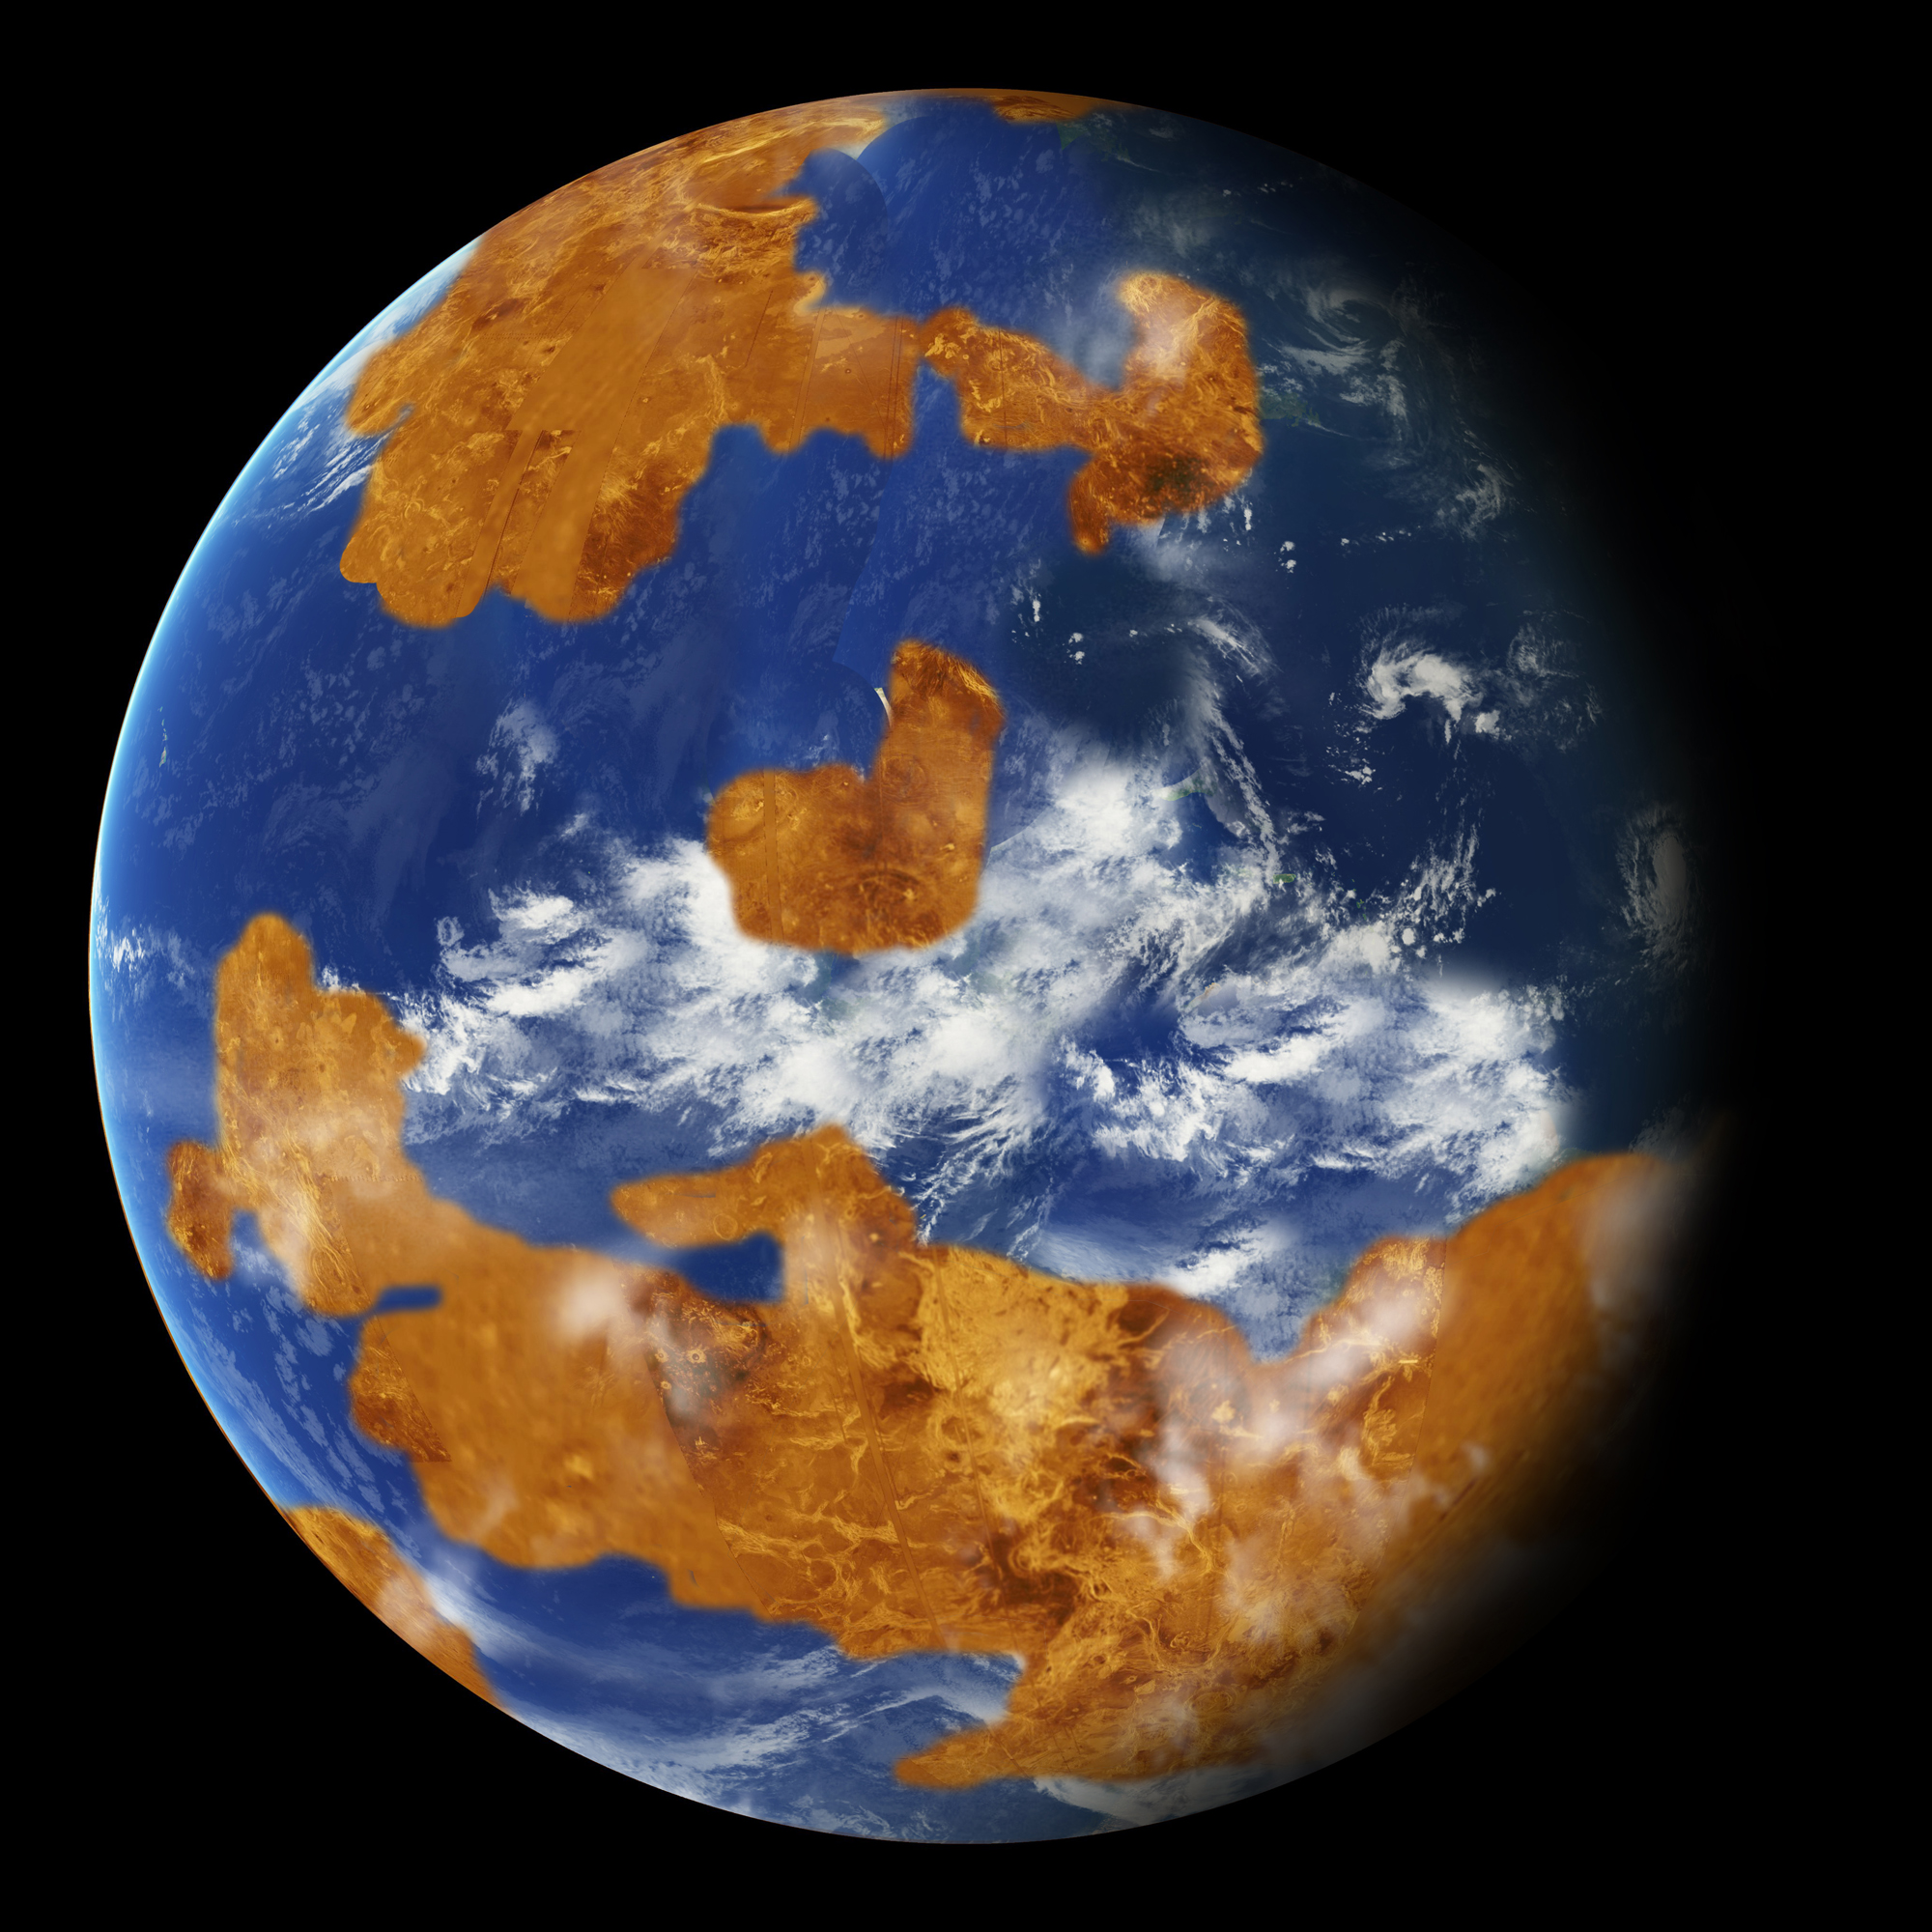 Venus may have been habitable